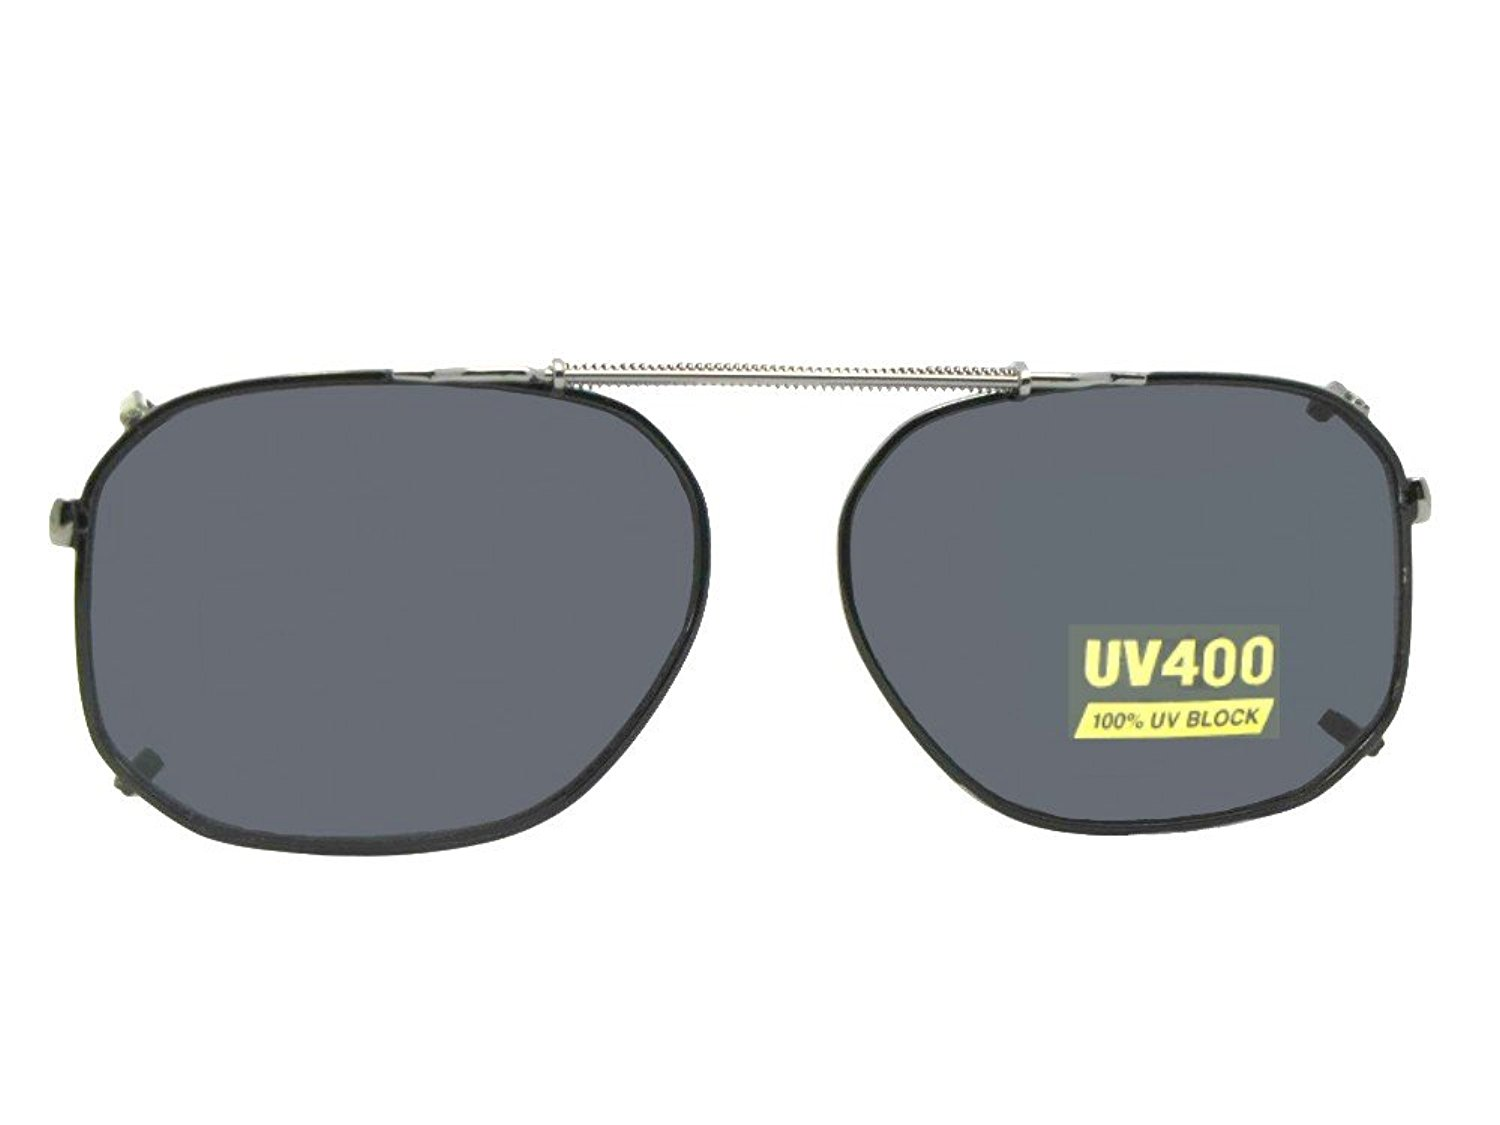 9c5c55f06b153 Get Quotations · Sunglass Rage Modified Aviator Non Polarized Clip on  Sunglasses